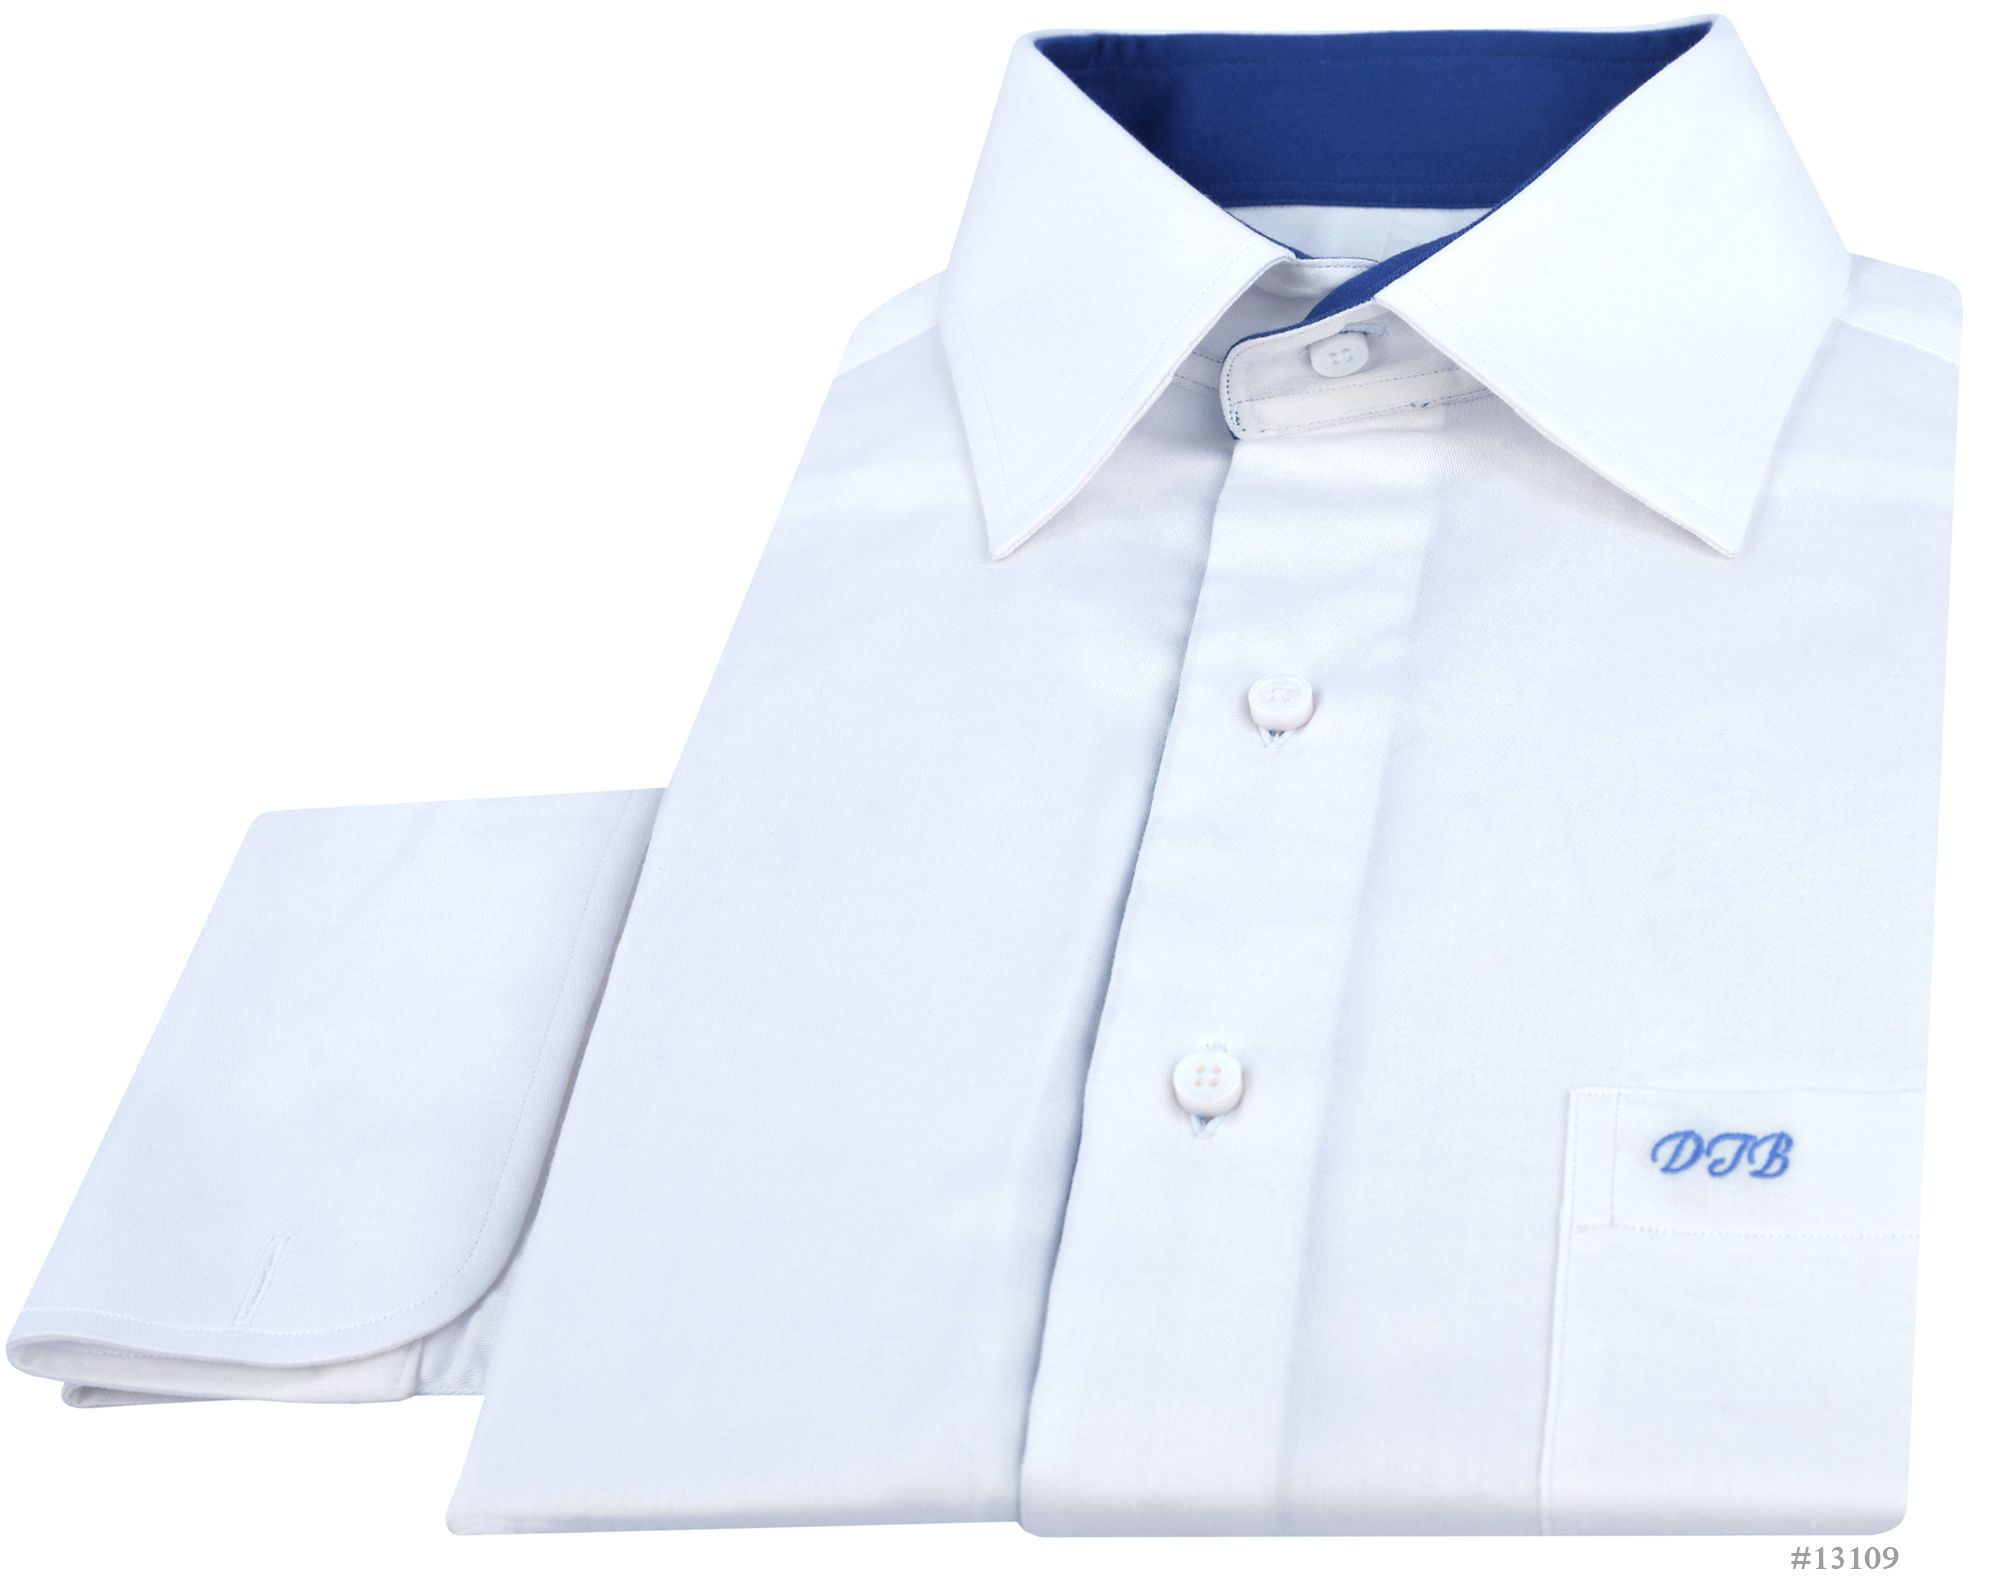 624fdeaf272 French Cuff Dress Shirts With Monogram